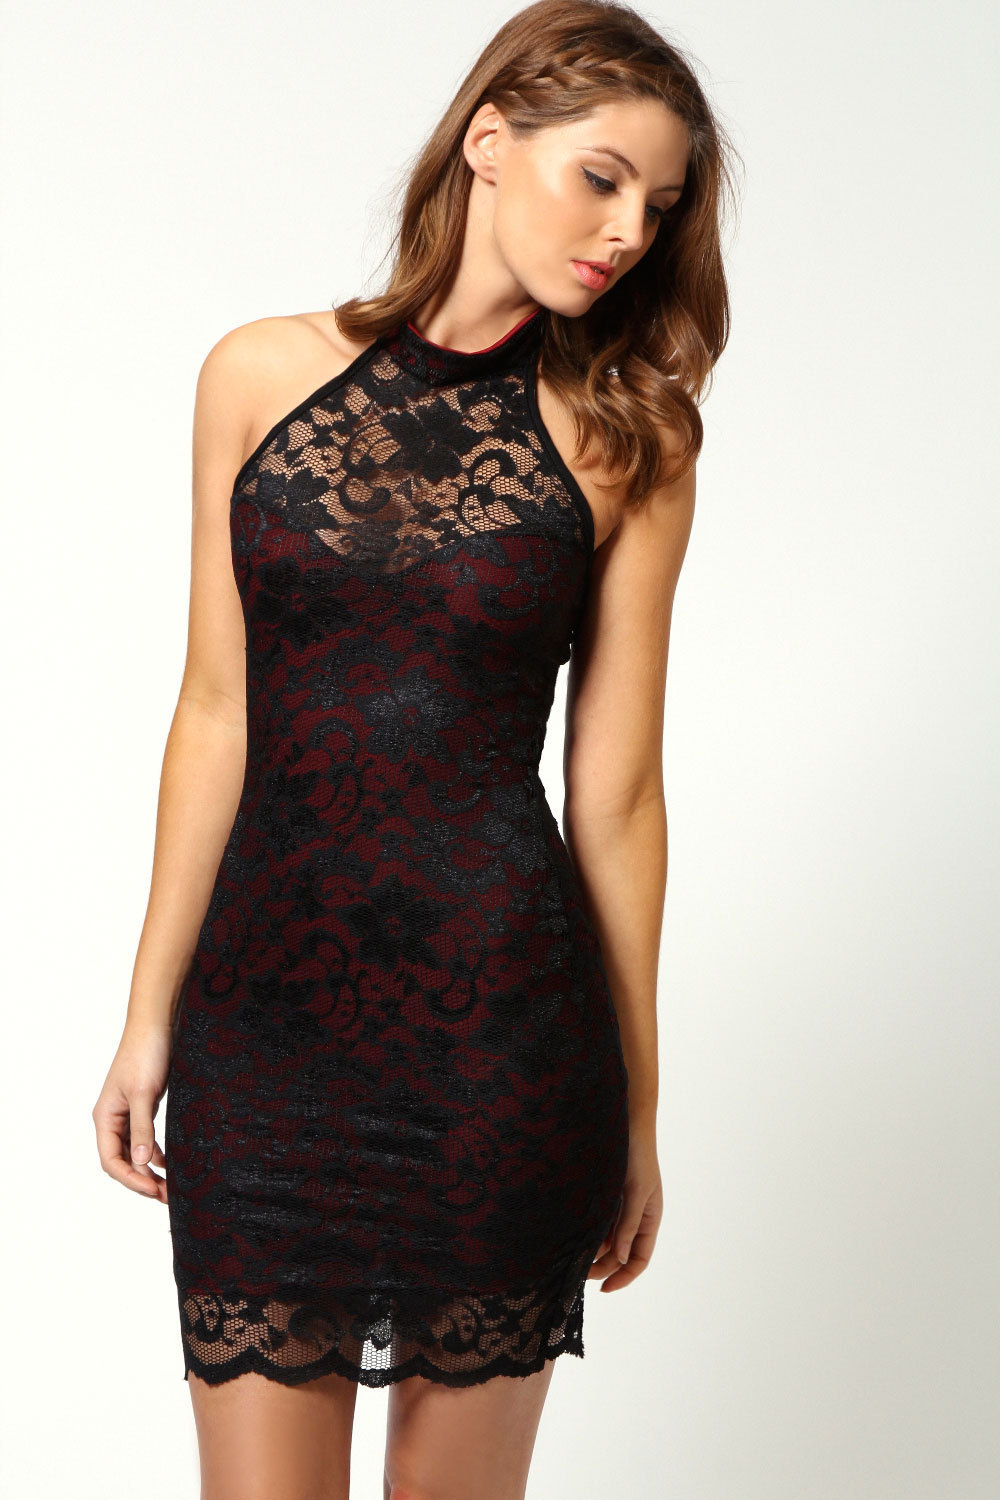 Lace dresses party black sexy